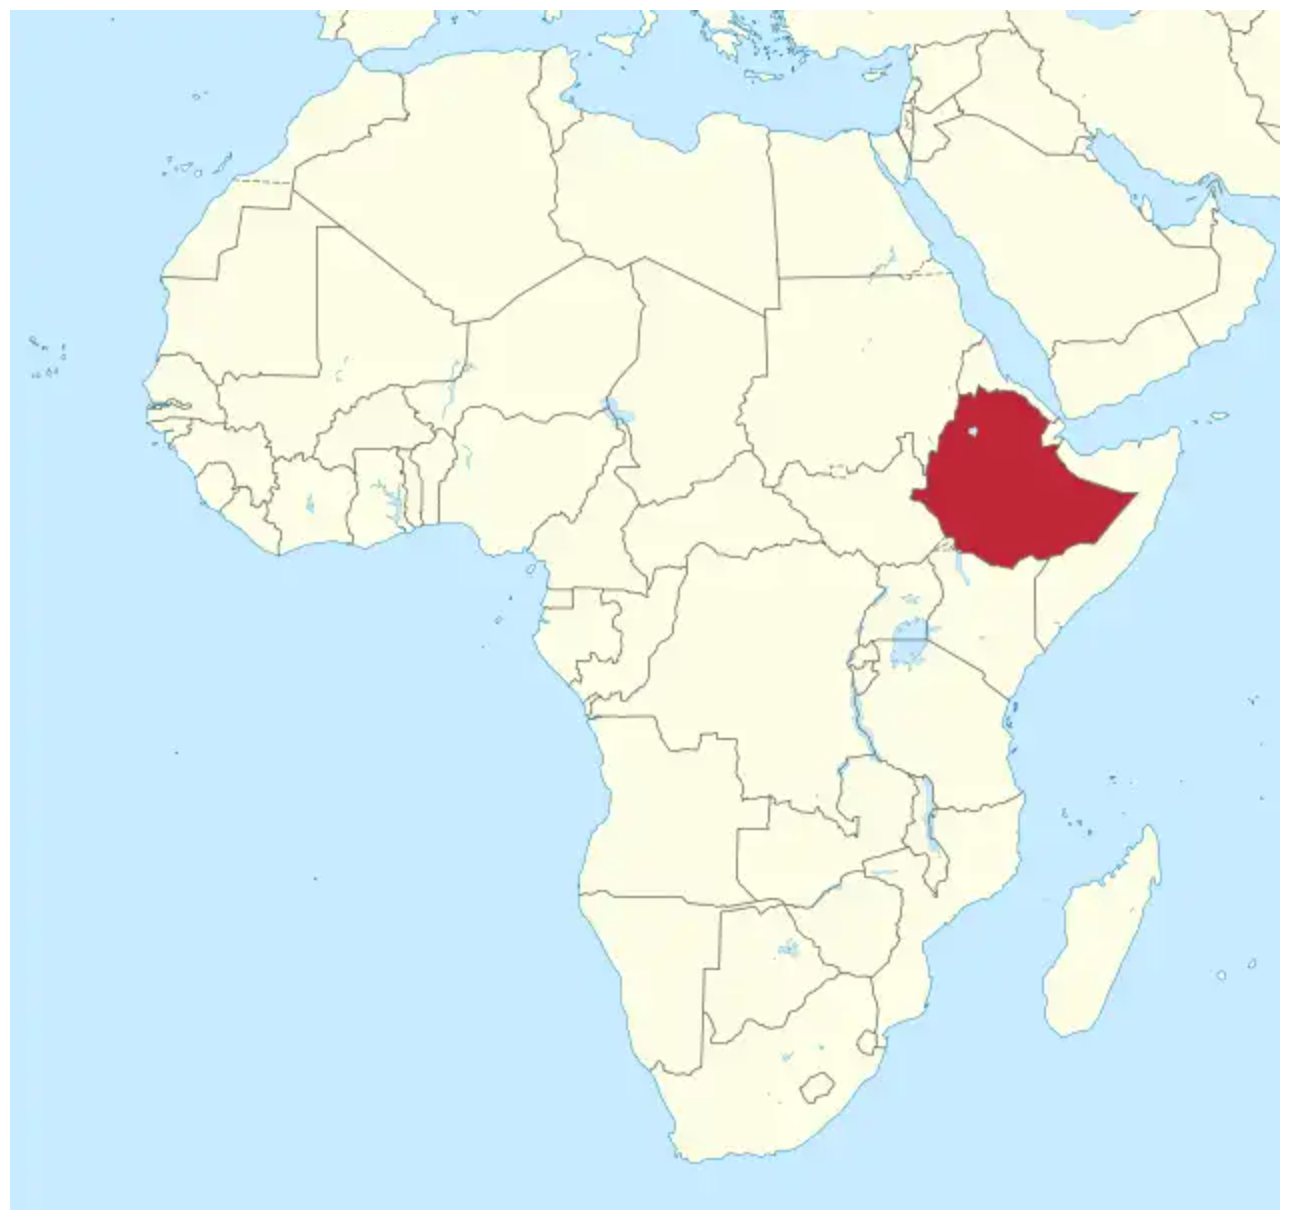 Ethiopia - The 9 countries of East Africa